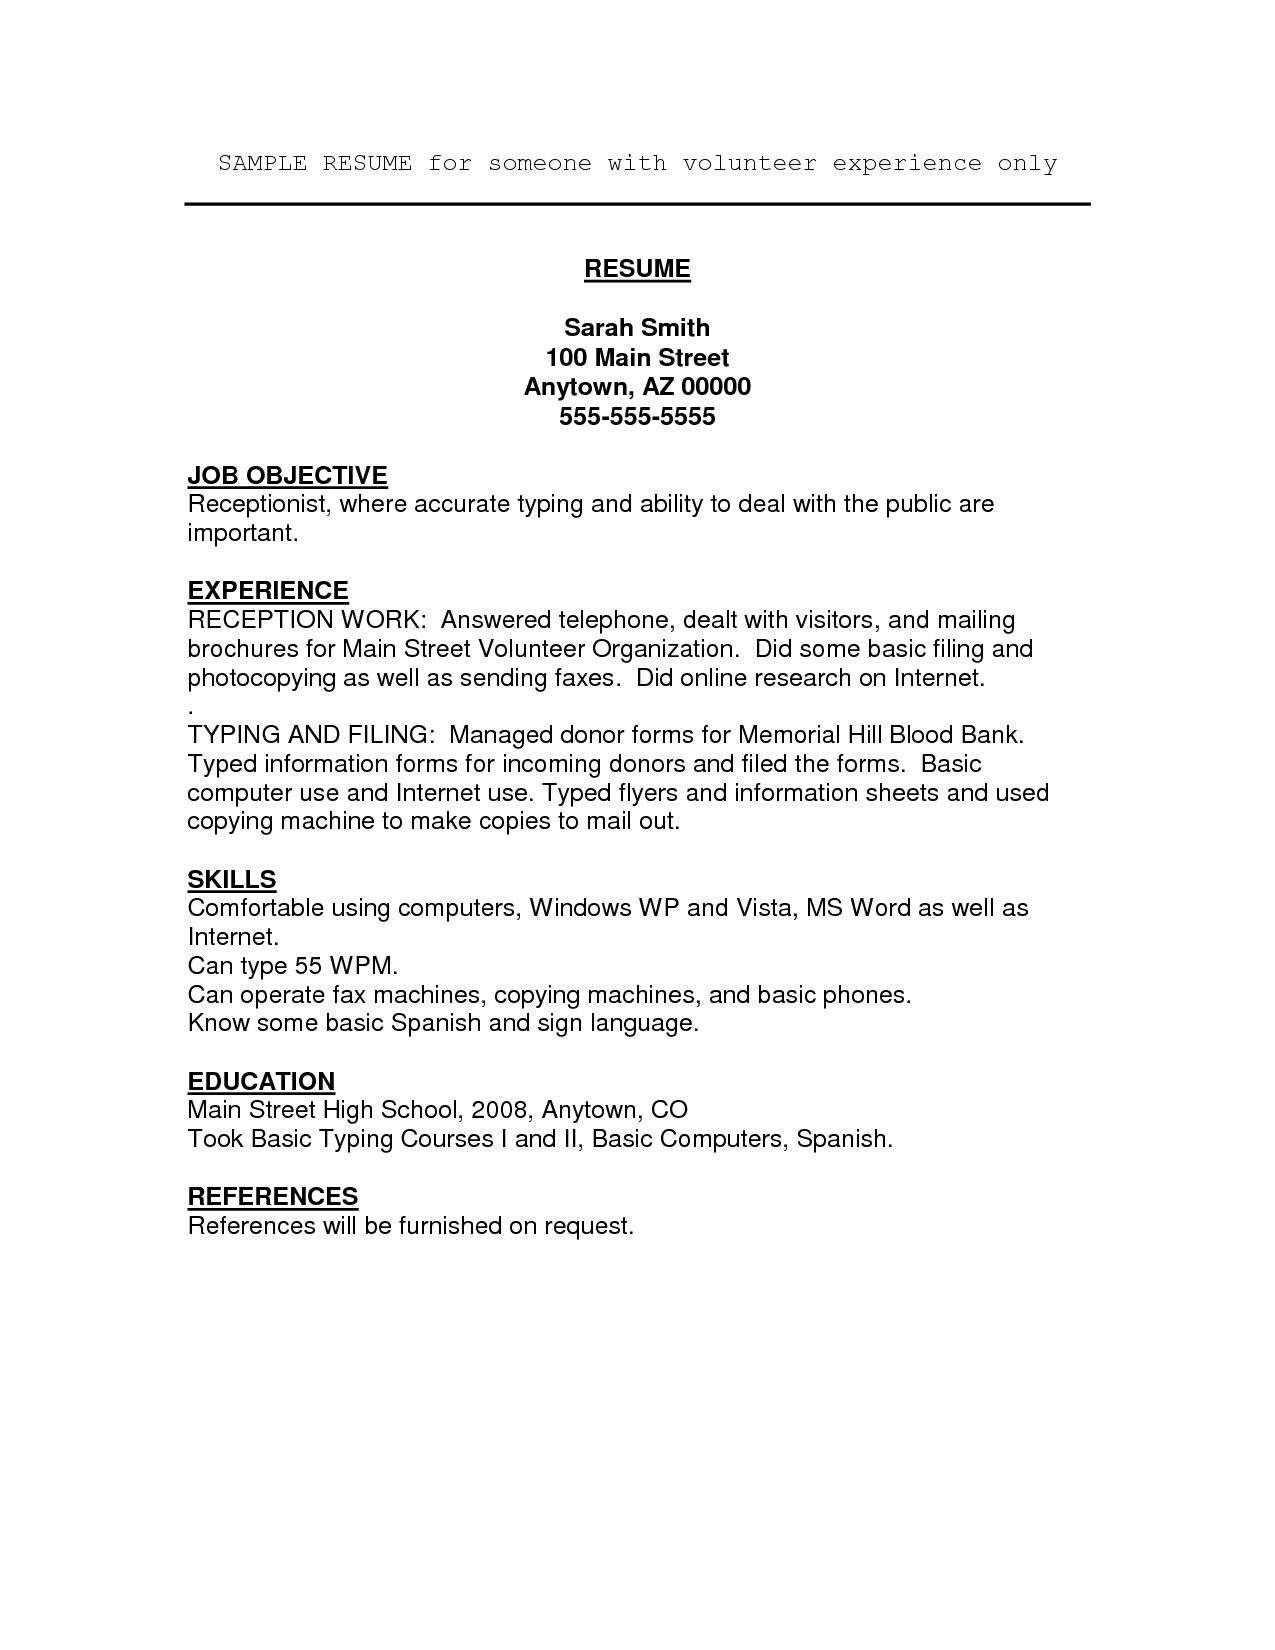 Job Resume Volunteer Experience Http Www Resumecareer Info Job